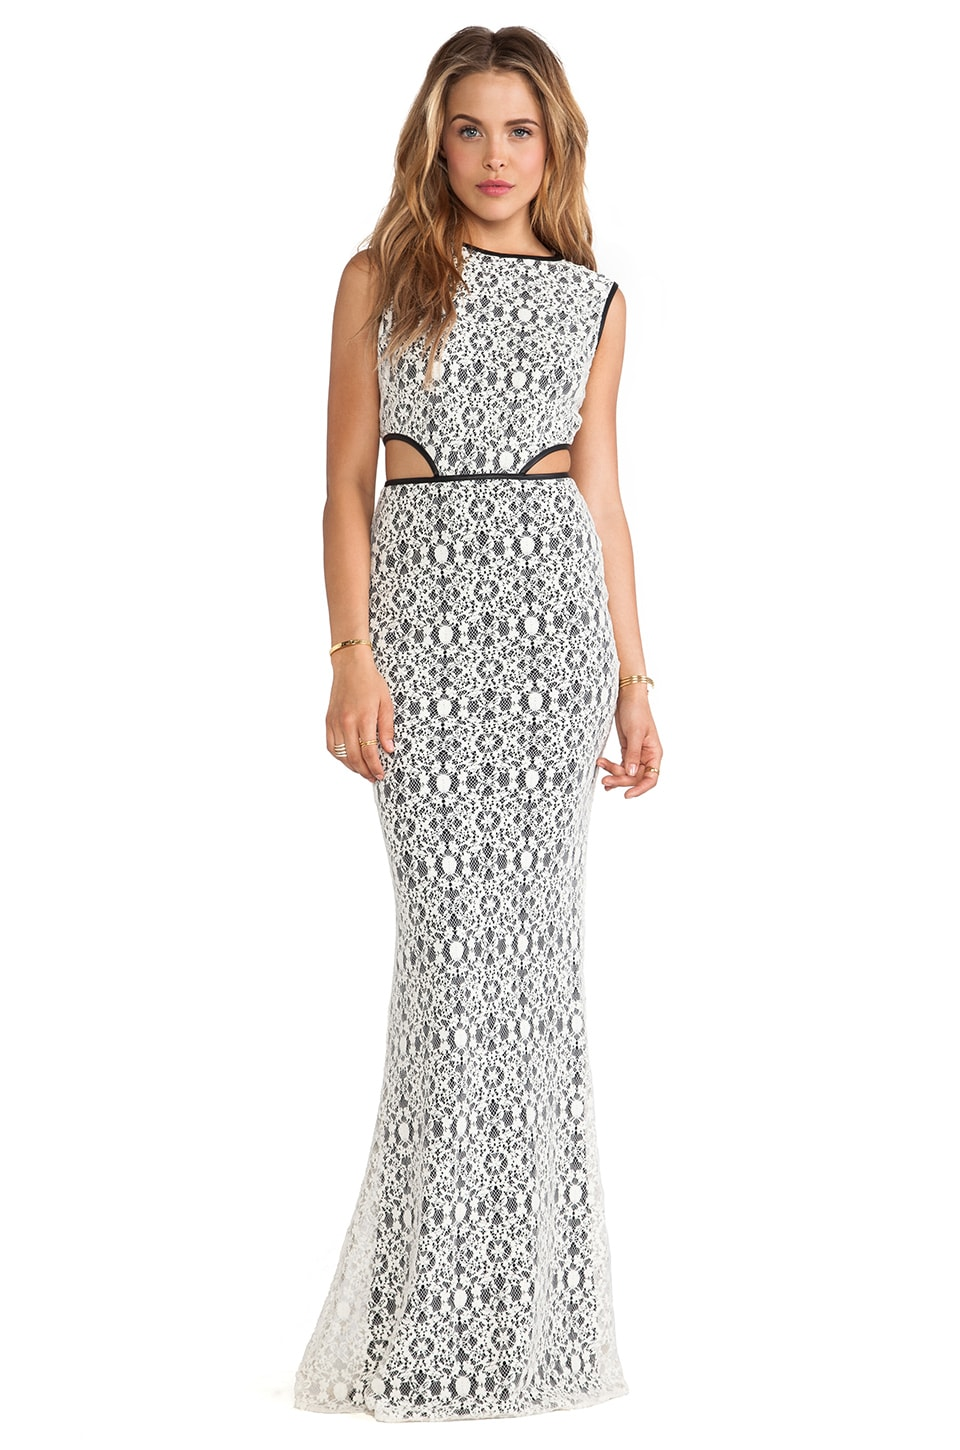 Boulee Max Maxi Dress in Ivory Lace